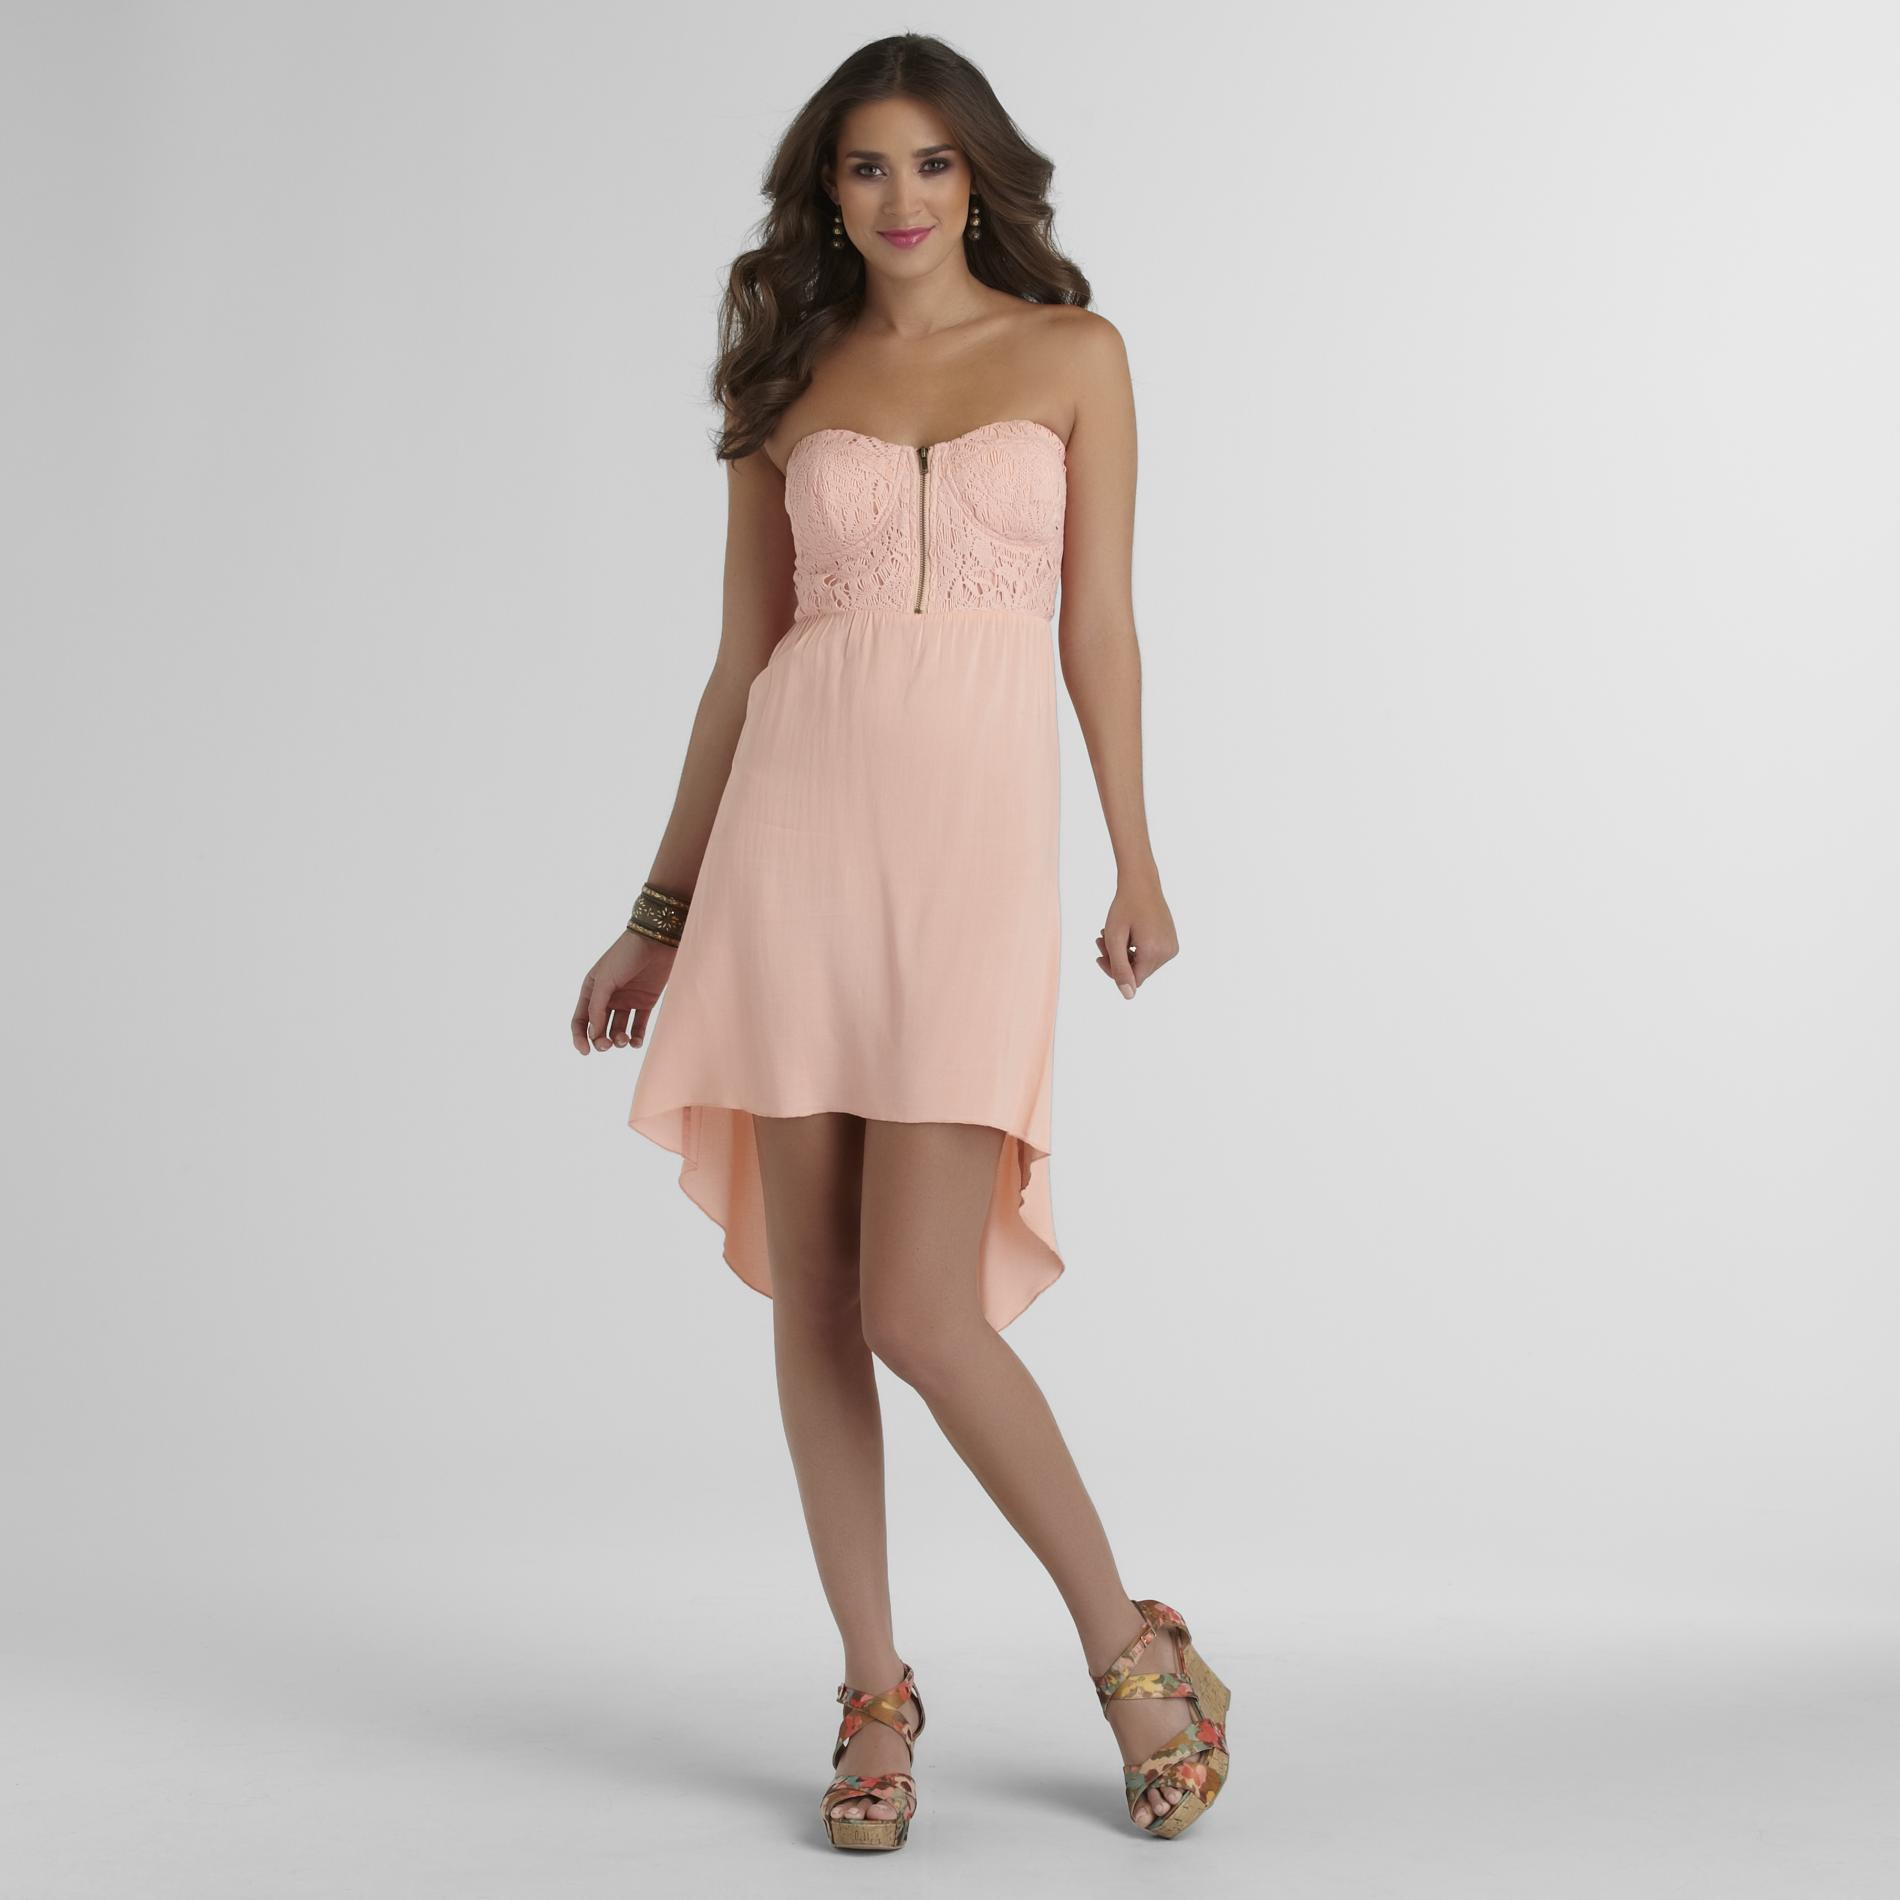 New Look Junior's Strapless Dress at Sears.com